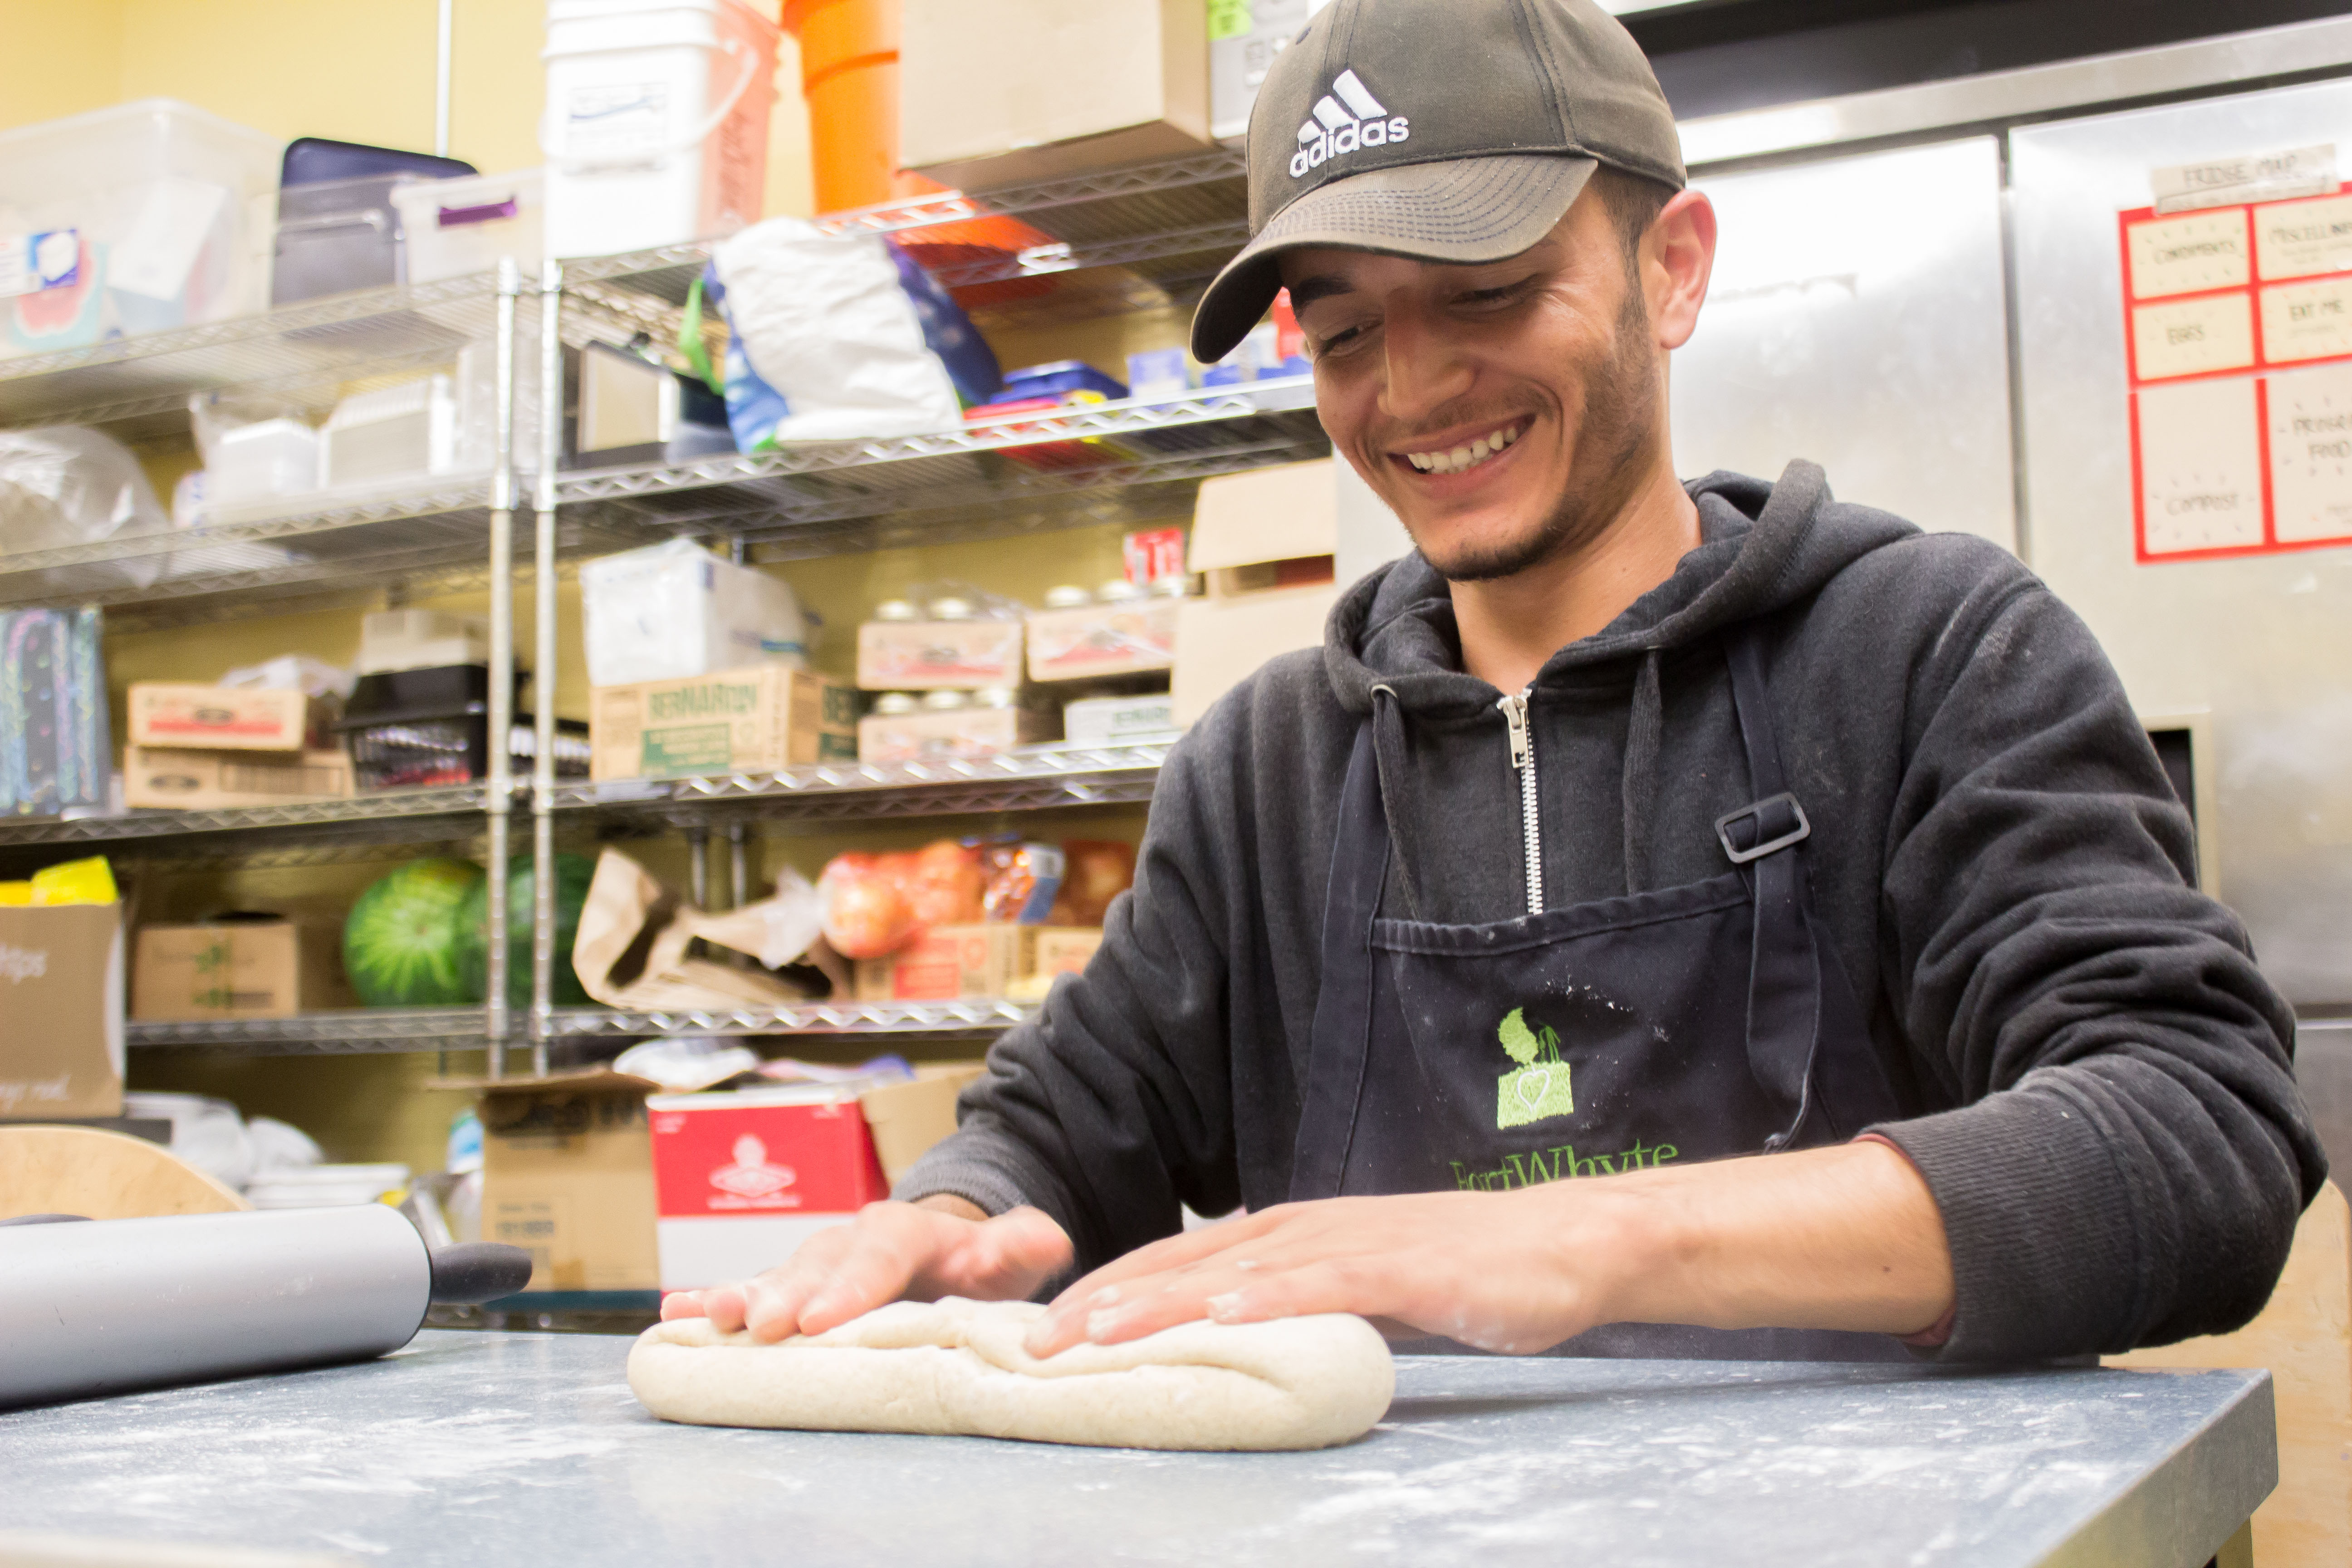 Junior staff rolling out pizza dough in the Farm kitchen.